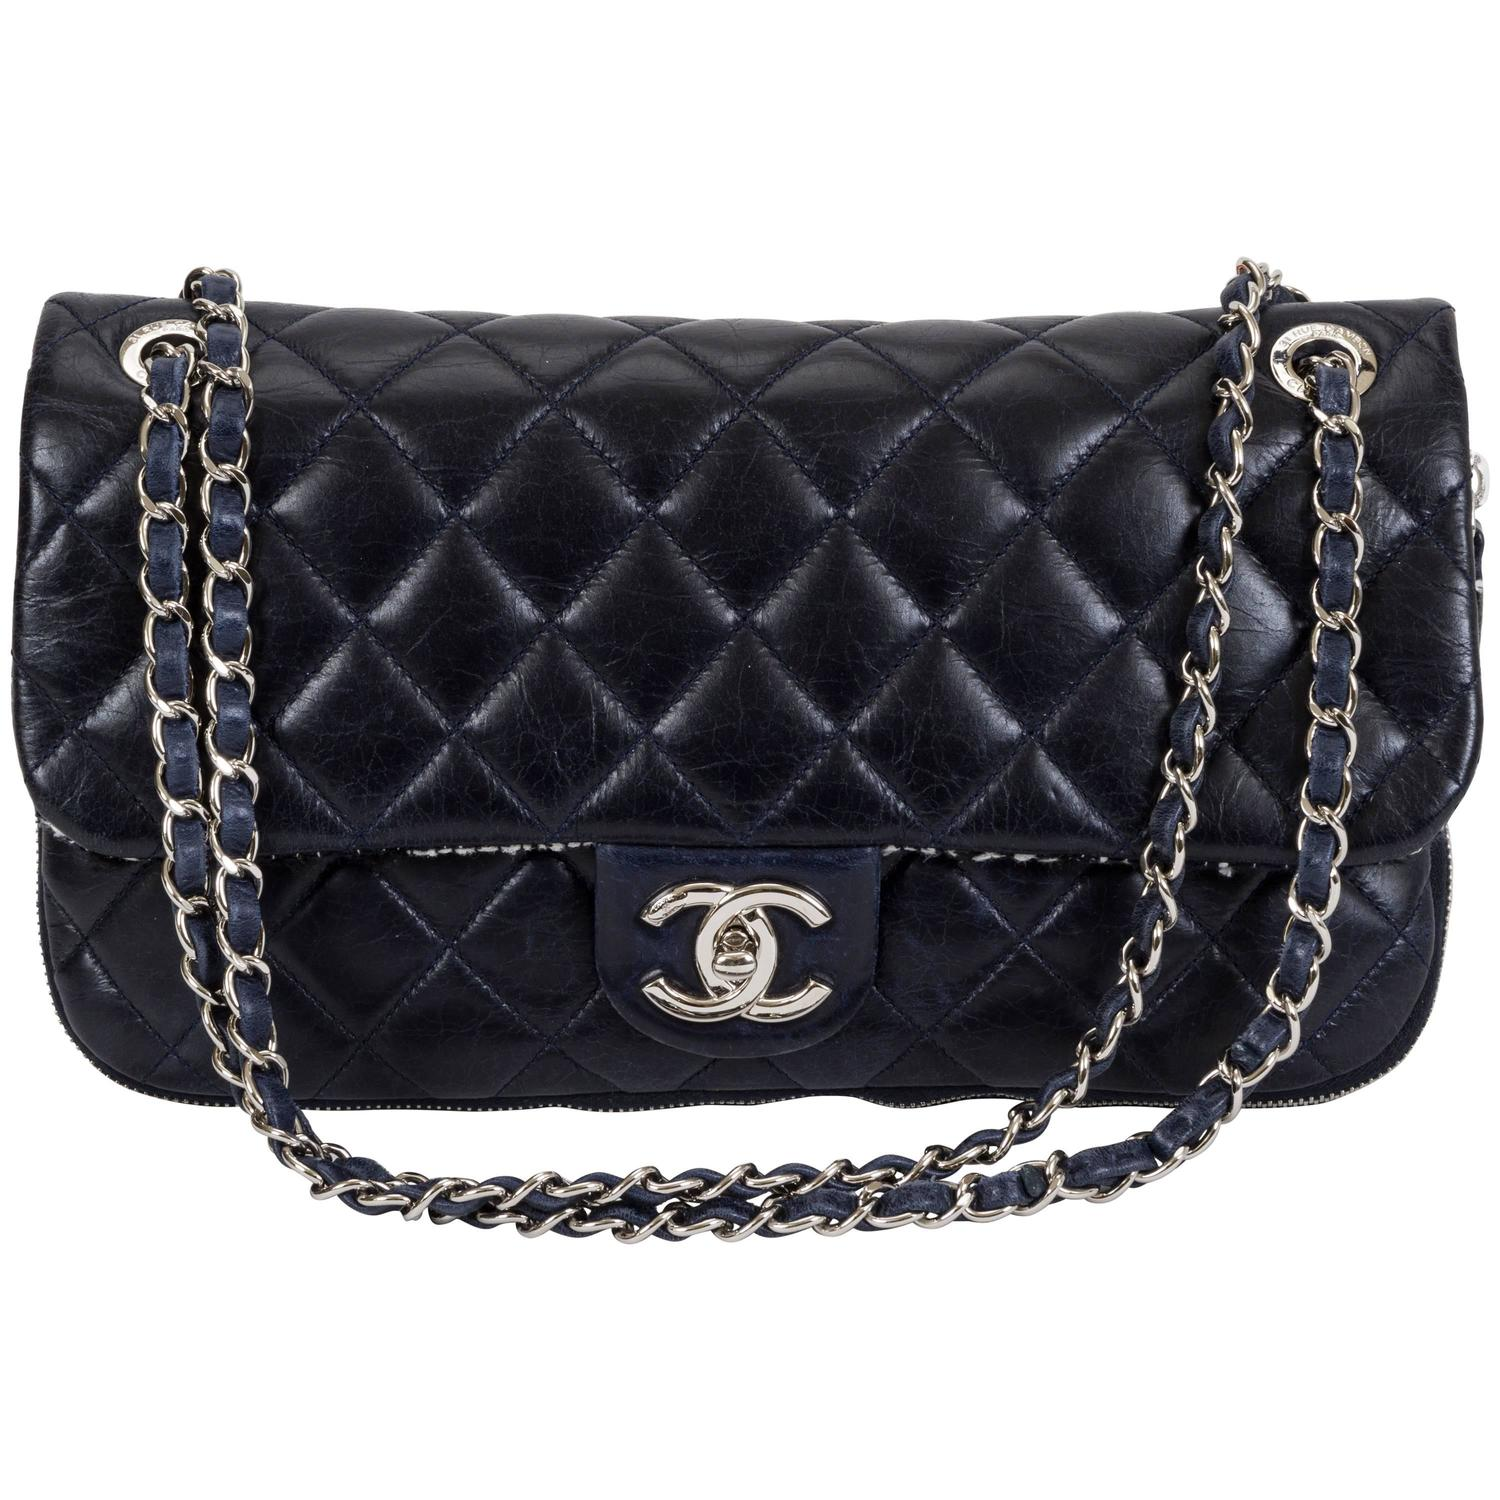 1d7ea32077cb Chanel Tweed Bag Navy Blue | Stanford Center for Opportunity Policy ...